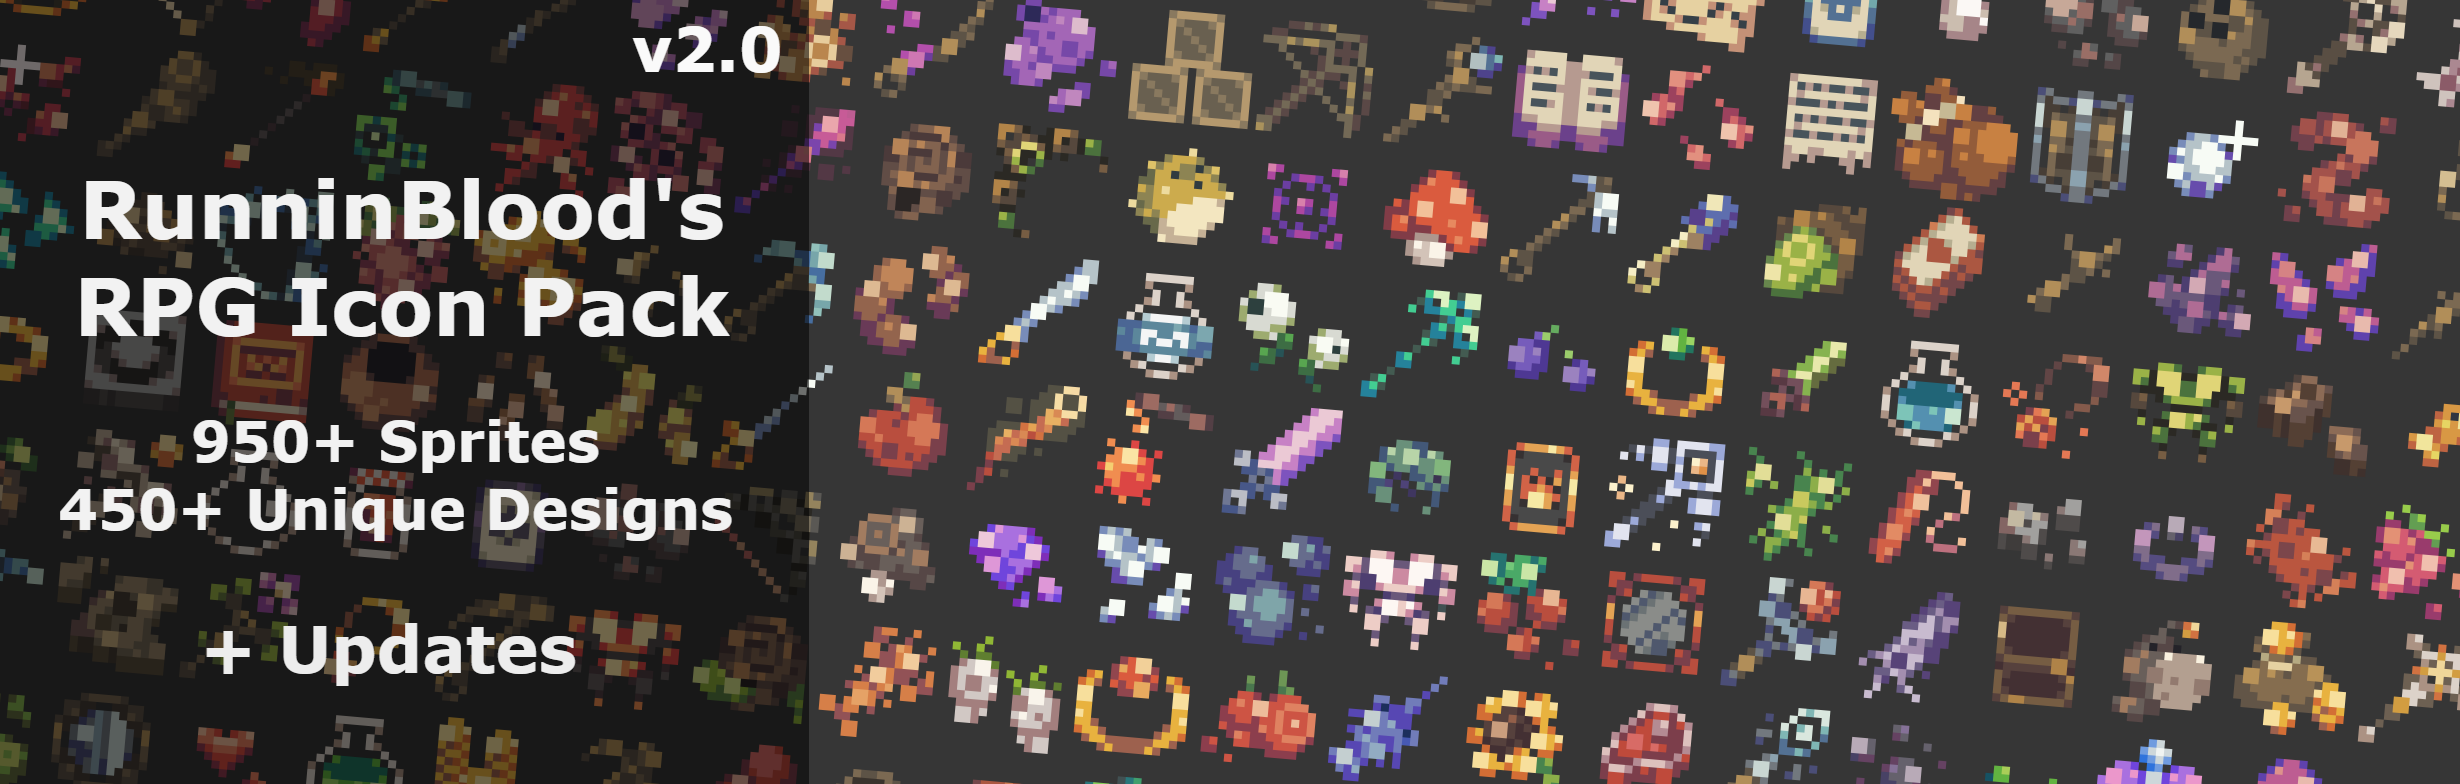 16x16 RPG Icon Pack